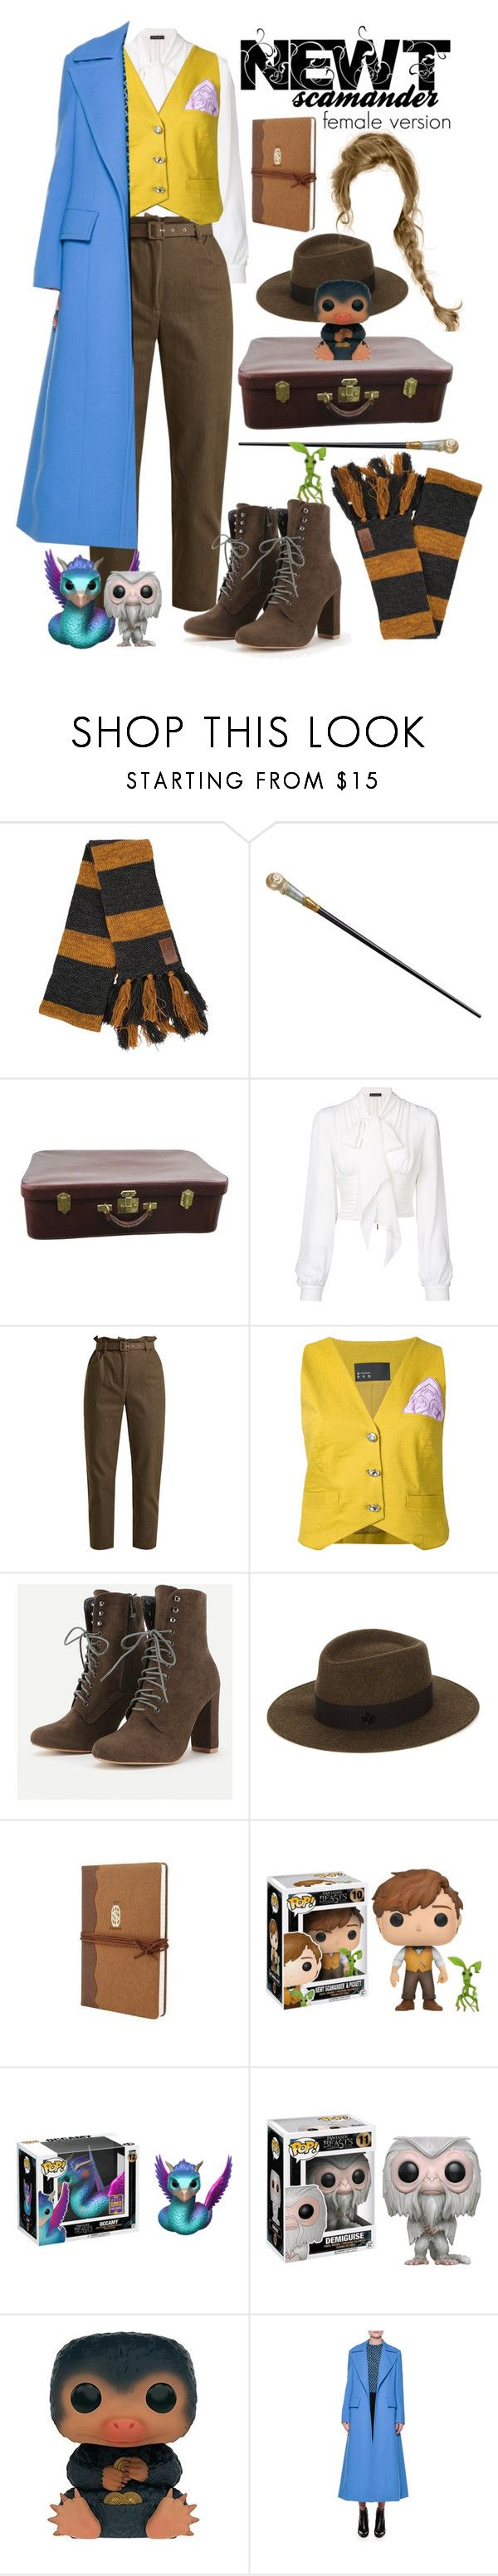 """Female version of Newt Scamander"" by gpatricia ❤ liked on Polyvore featuring Elope, Hermès, Plein Sud, Isa Arfen, N-DUO, Maison Michel, Funko and Marni"